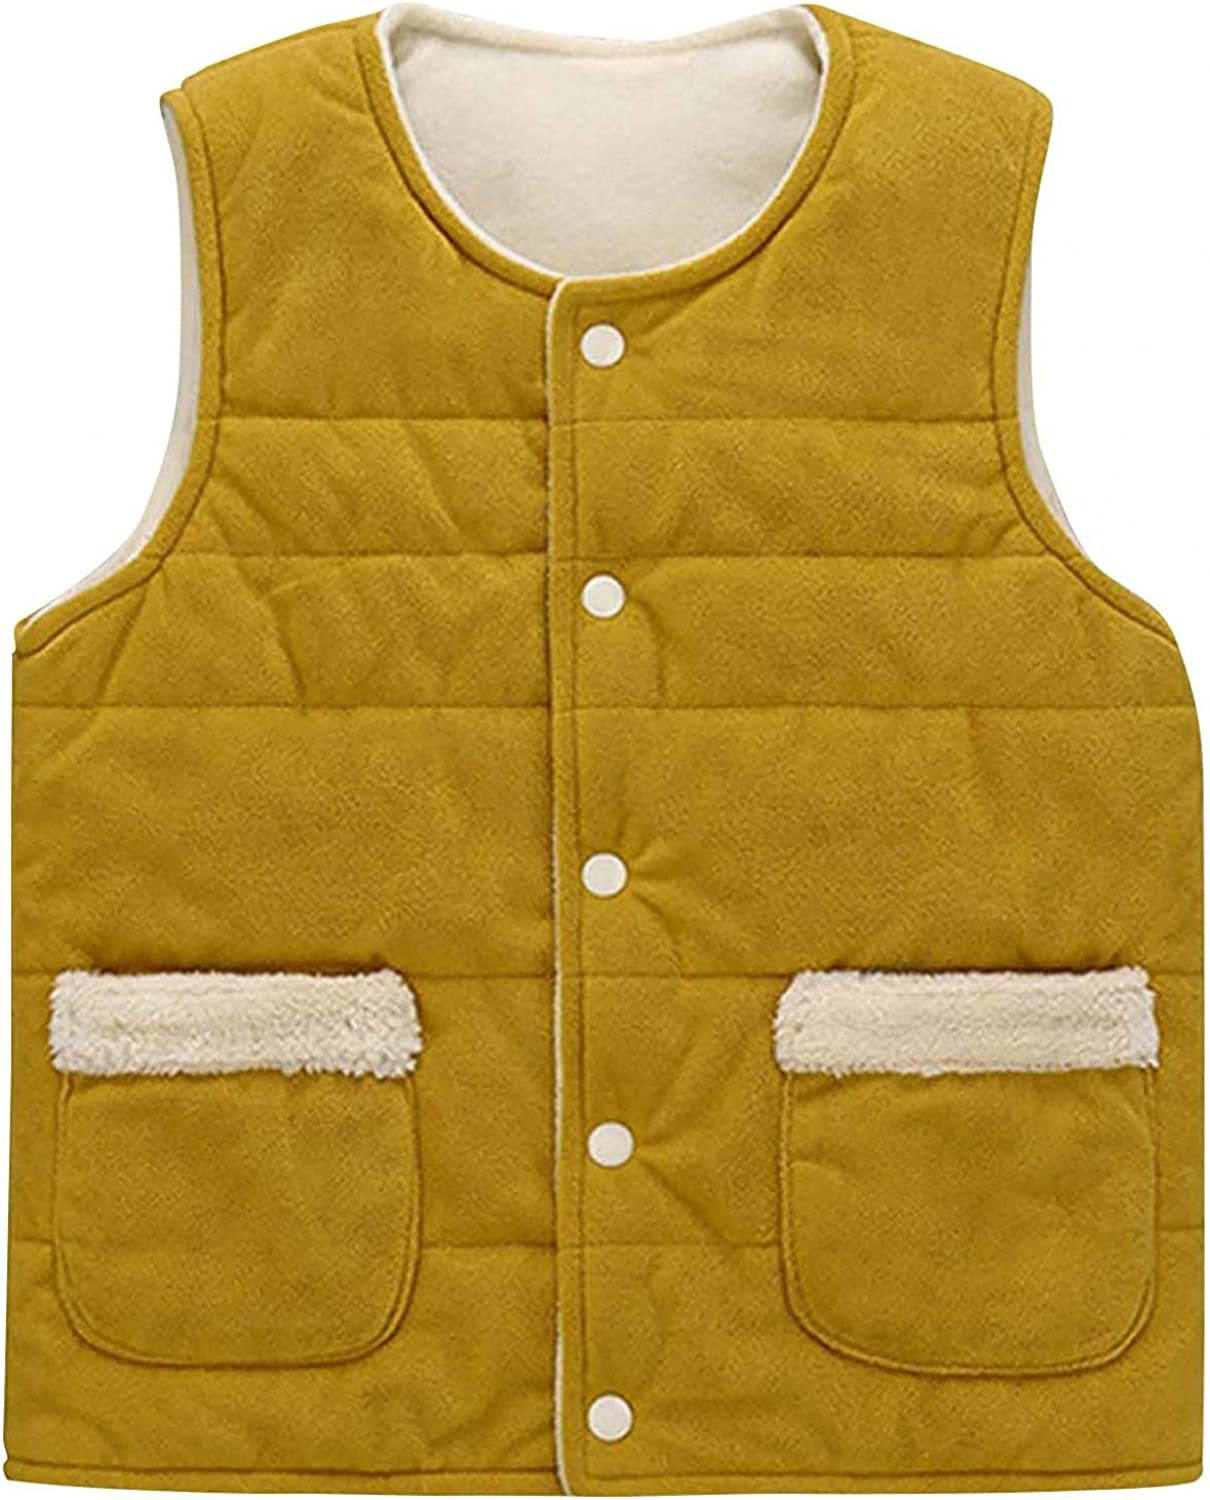 Kids Baby Girls Max 41% OFF Boys Cotton Vest Max 73% OFF Solid Sleeveless Coat Jacket Co